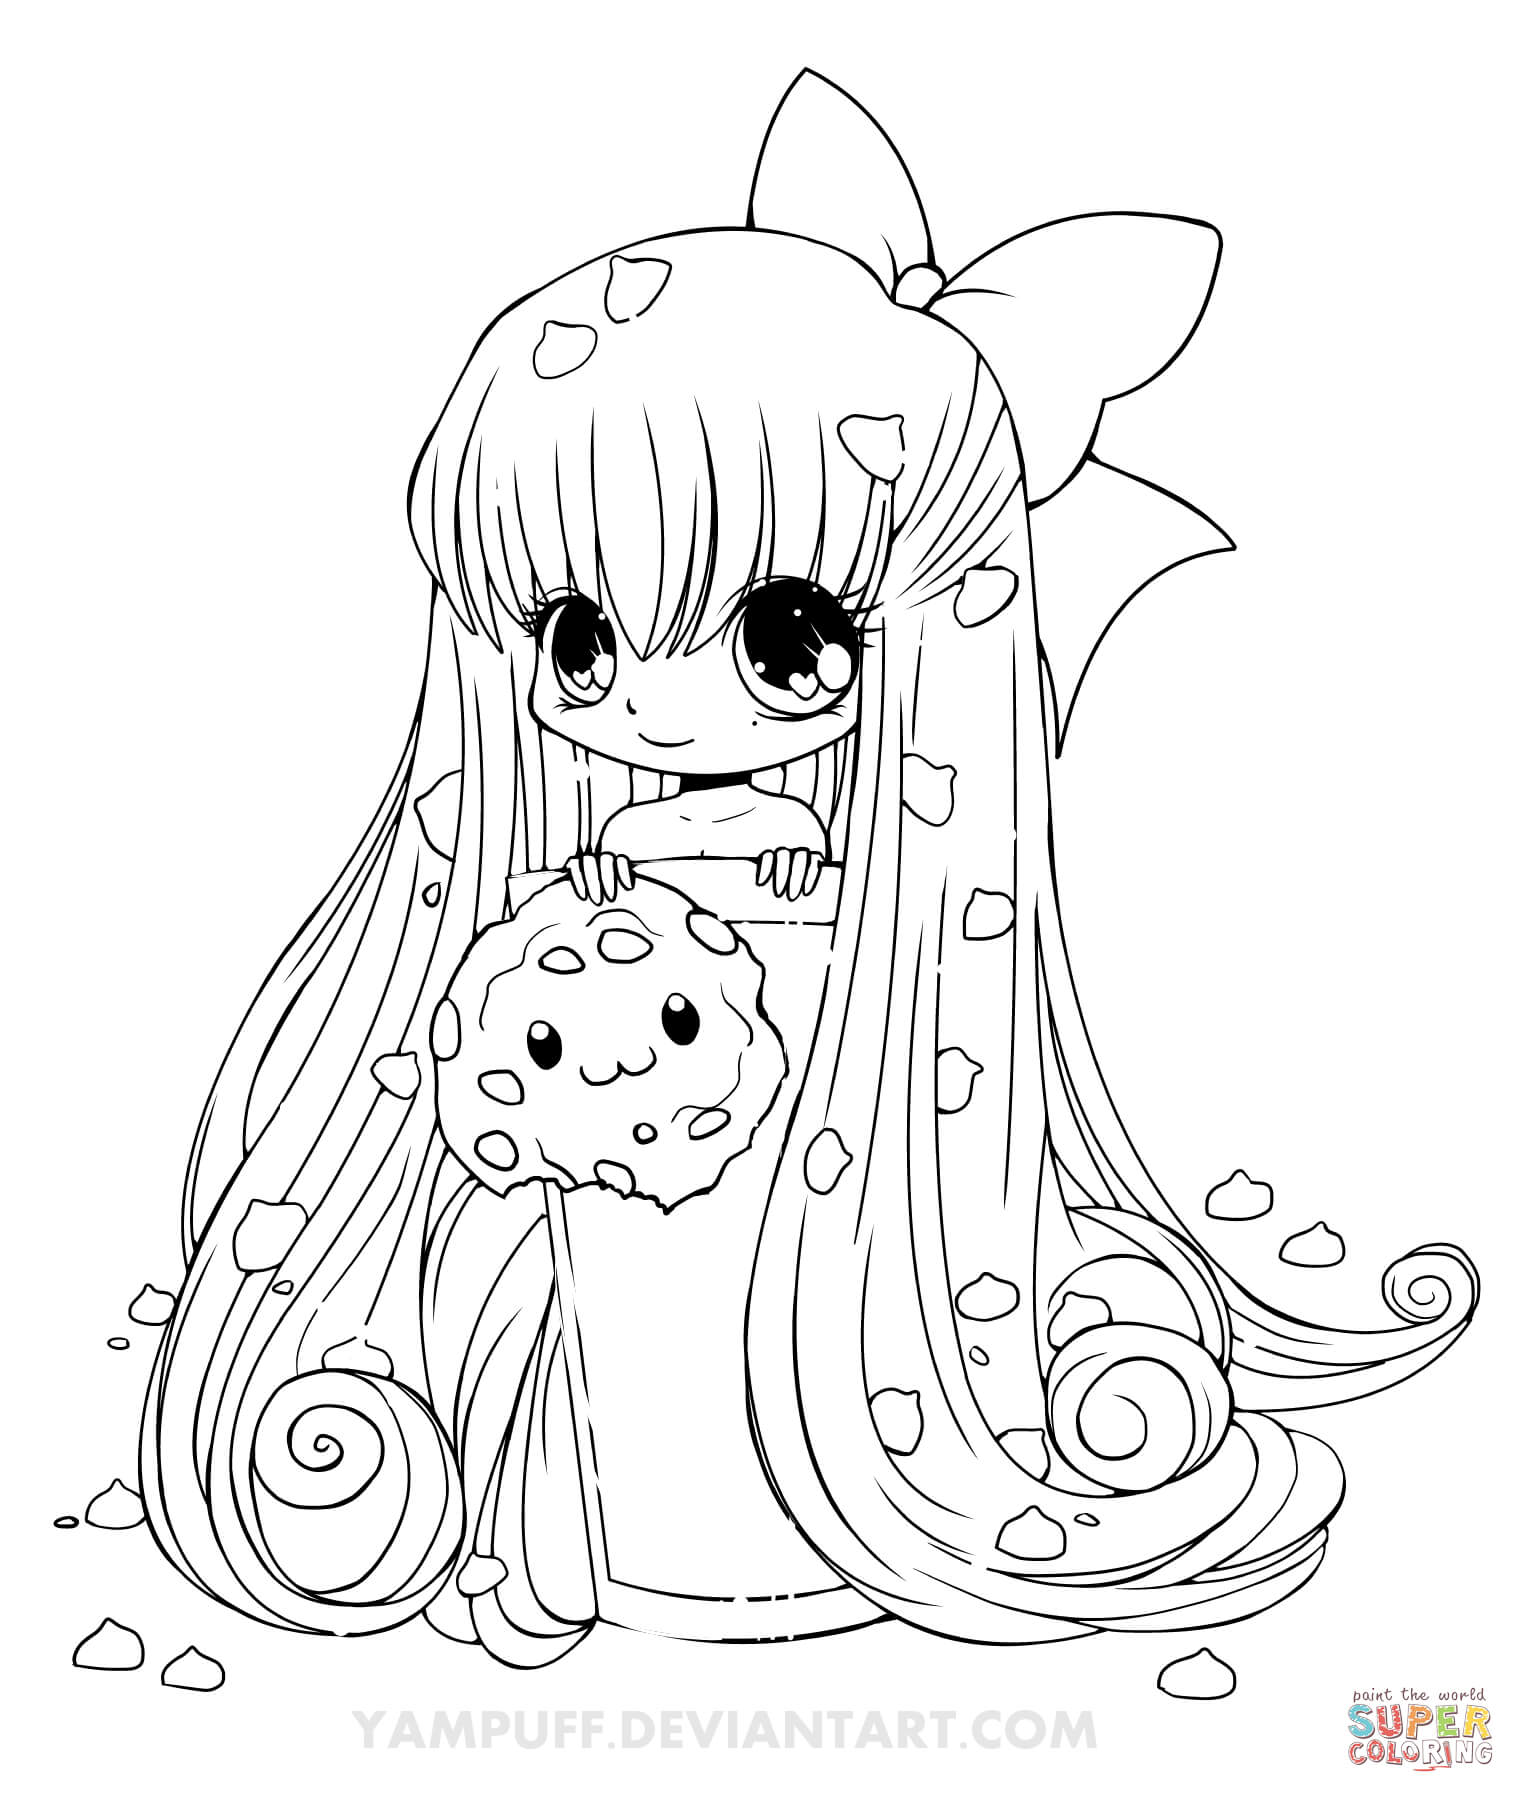 Click the chibi cookie girl coloring pages